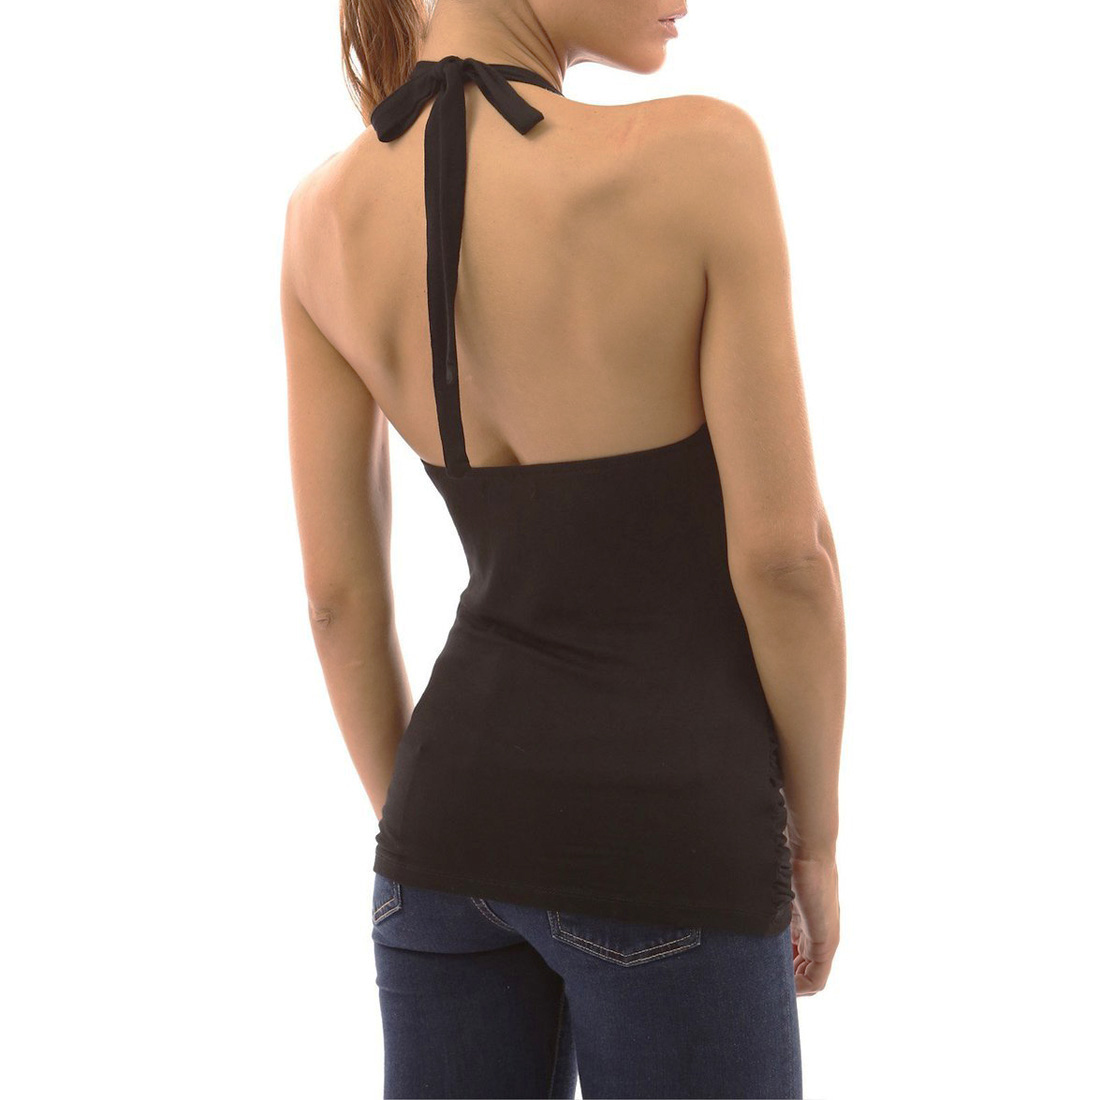 Whether you're shopping for cute little tops, cold shoulder and off-the-shoulder tops, devastatingly sexy women's blouses, sweaters for all seasons or alluring tanks, bustiers and halters, bebe has the best selection of sexy tops and shirts to complete your wardrobe and make outfit after outfit look amazing.